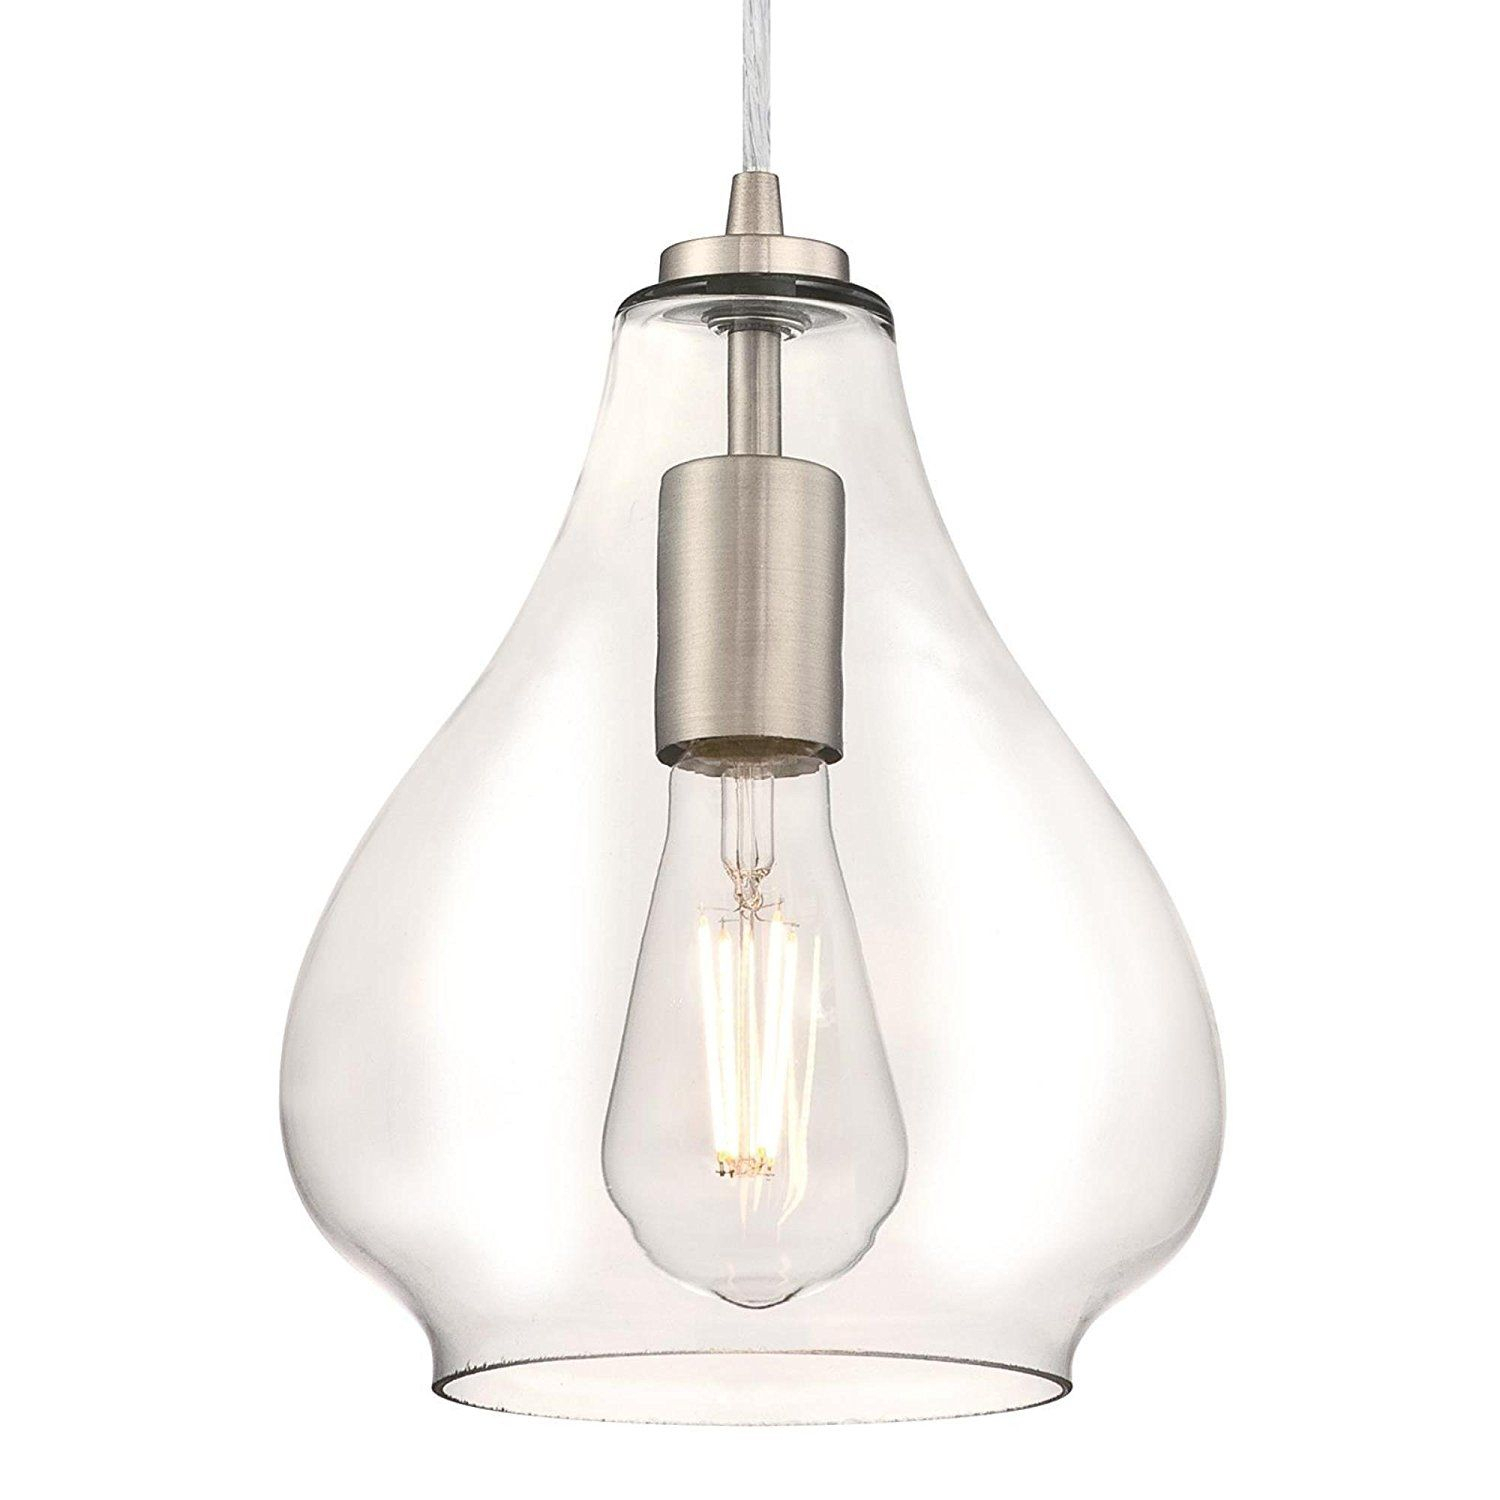 Westinghouse 6102600 Industrial One Light Adjustable Mini Pertaining To Moyer 1 Light Single Cylinder Pendants (View 29 of 30)